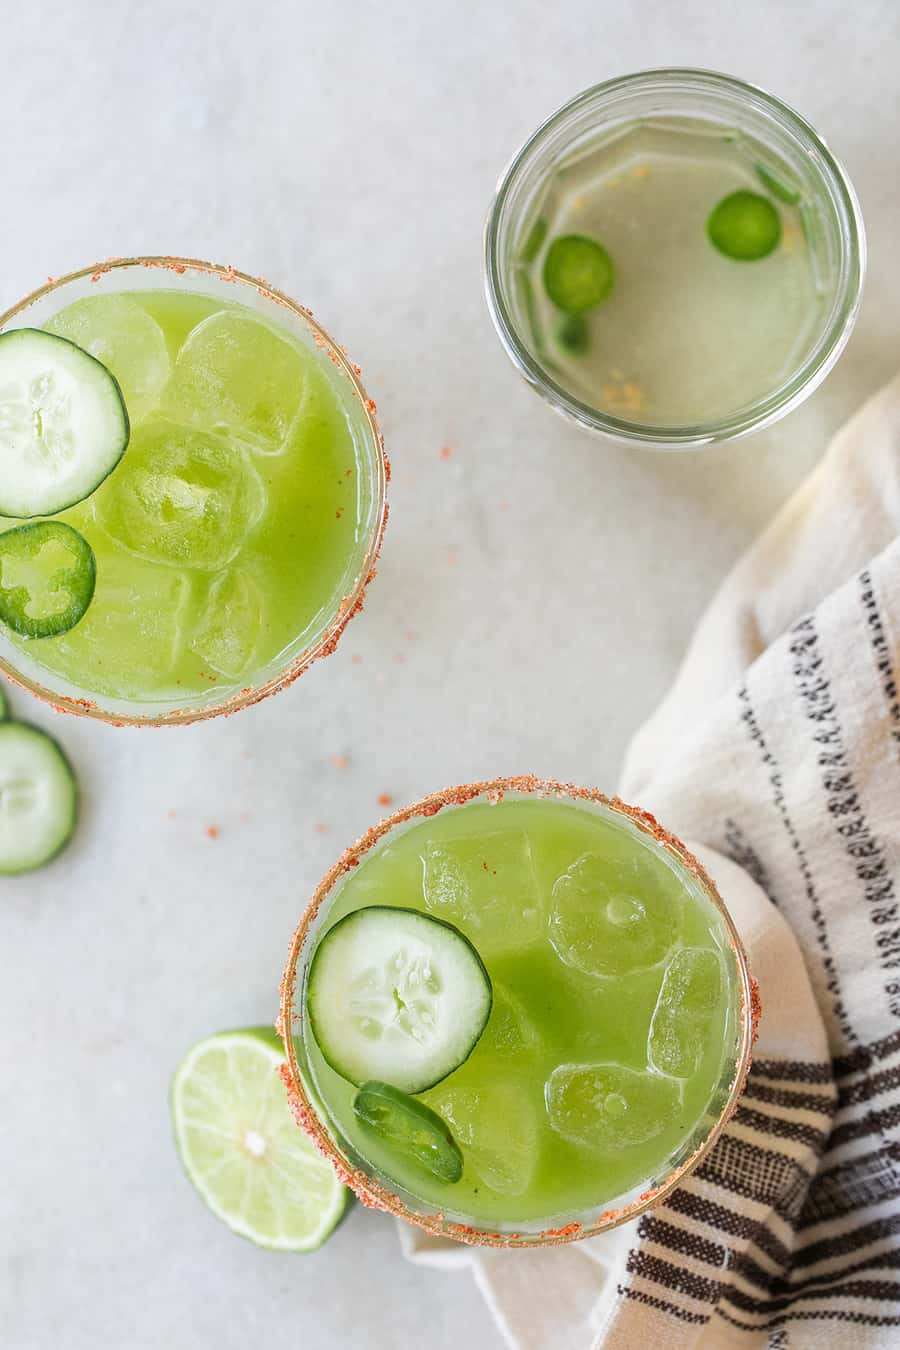 Sargent pepper green spicy cocktail with cucumber and jalapeño tequila